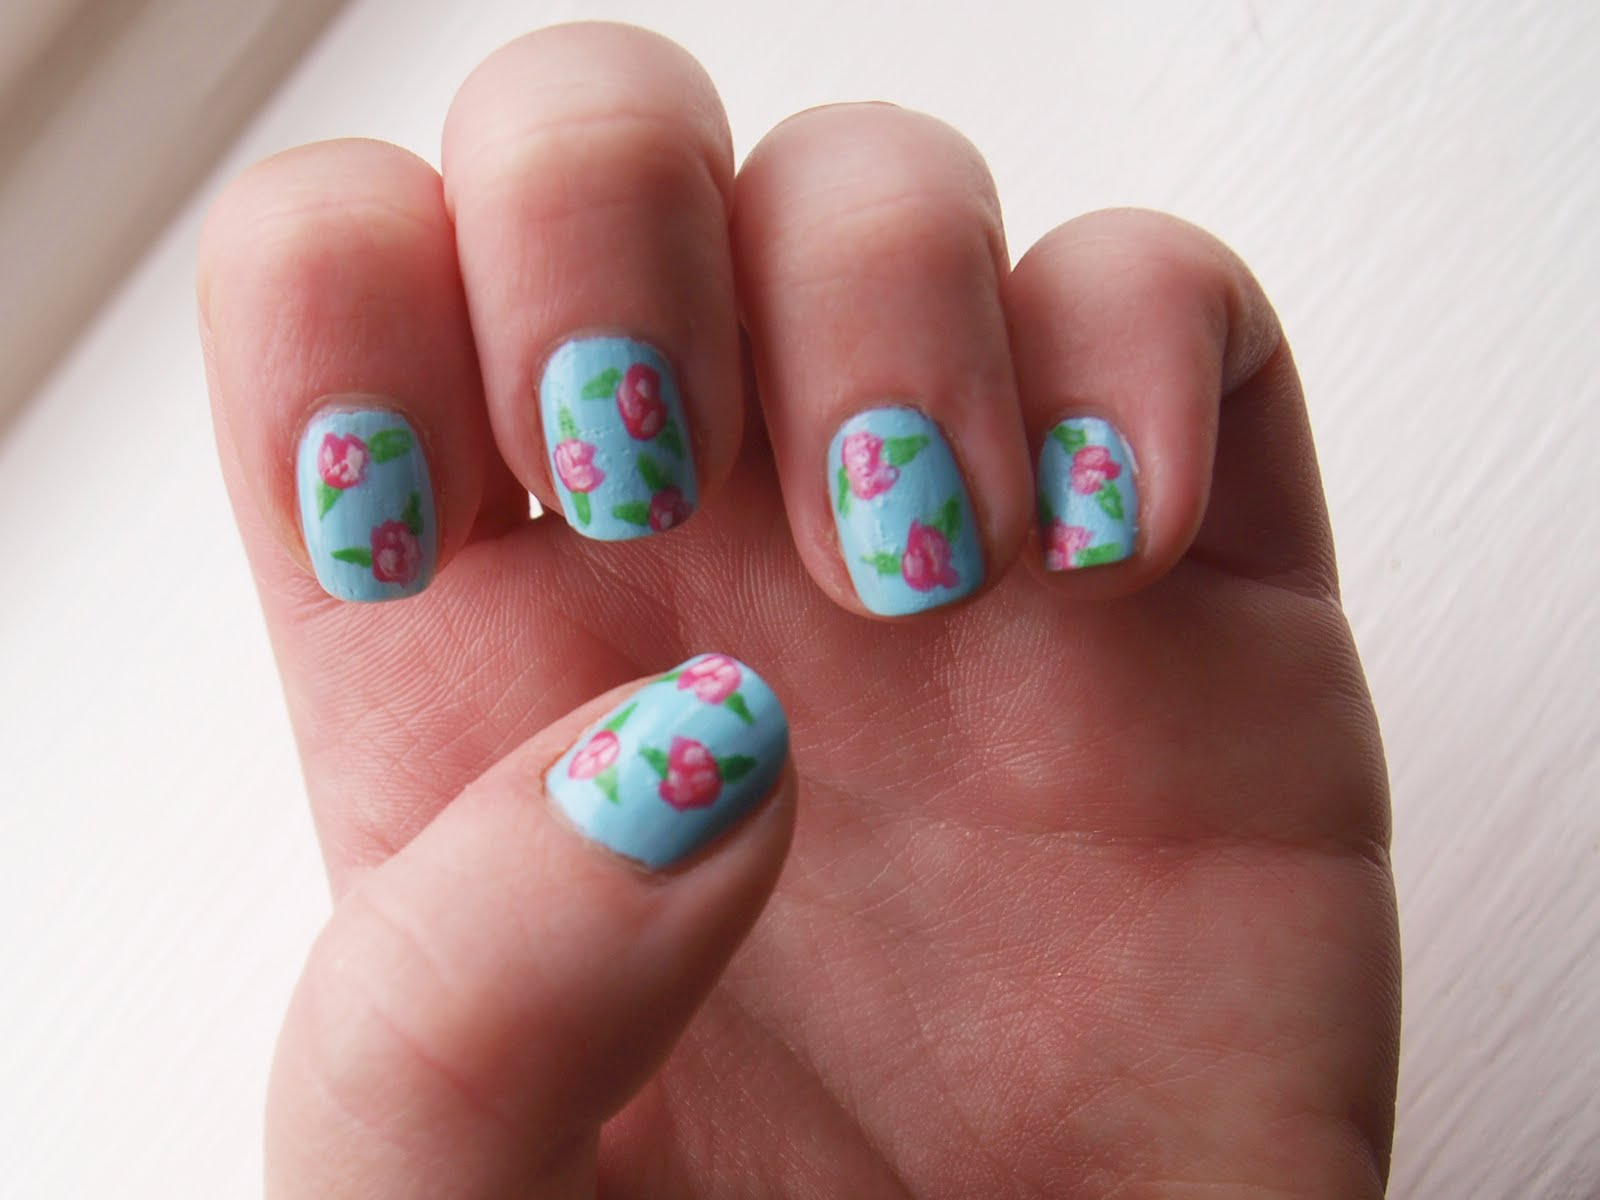 Short Nail Designs Tumblr | Nail Designs, Hair Styles, Tattoos and ...